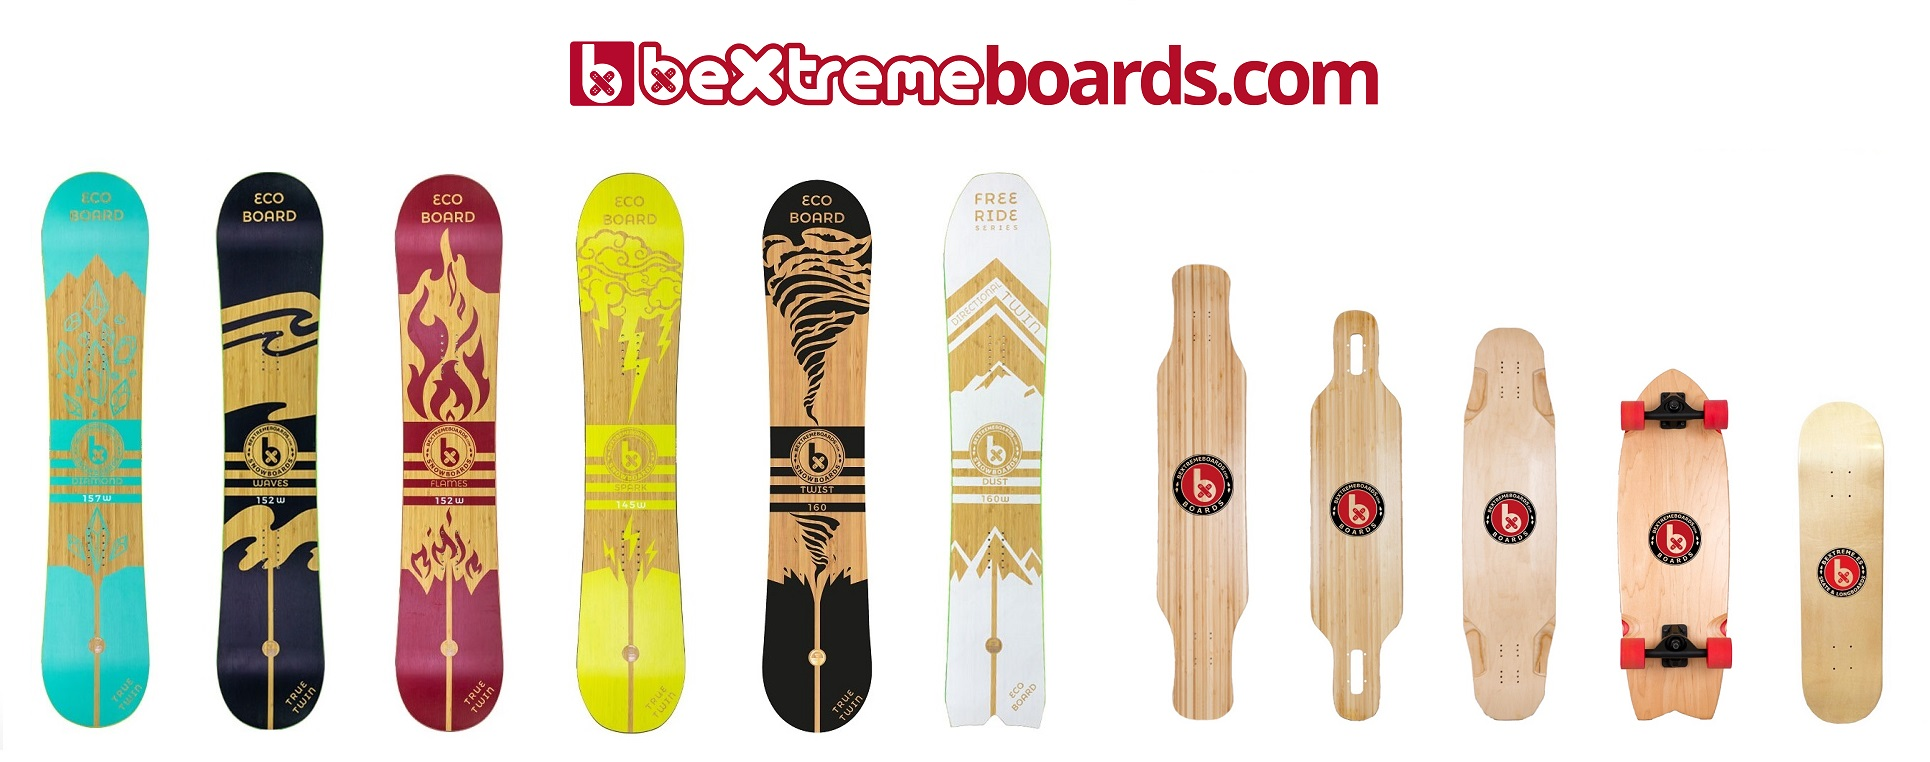 SNOWBOARDS-LONGBOARDS BEXTREME 2019